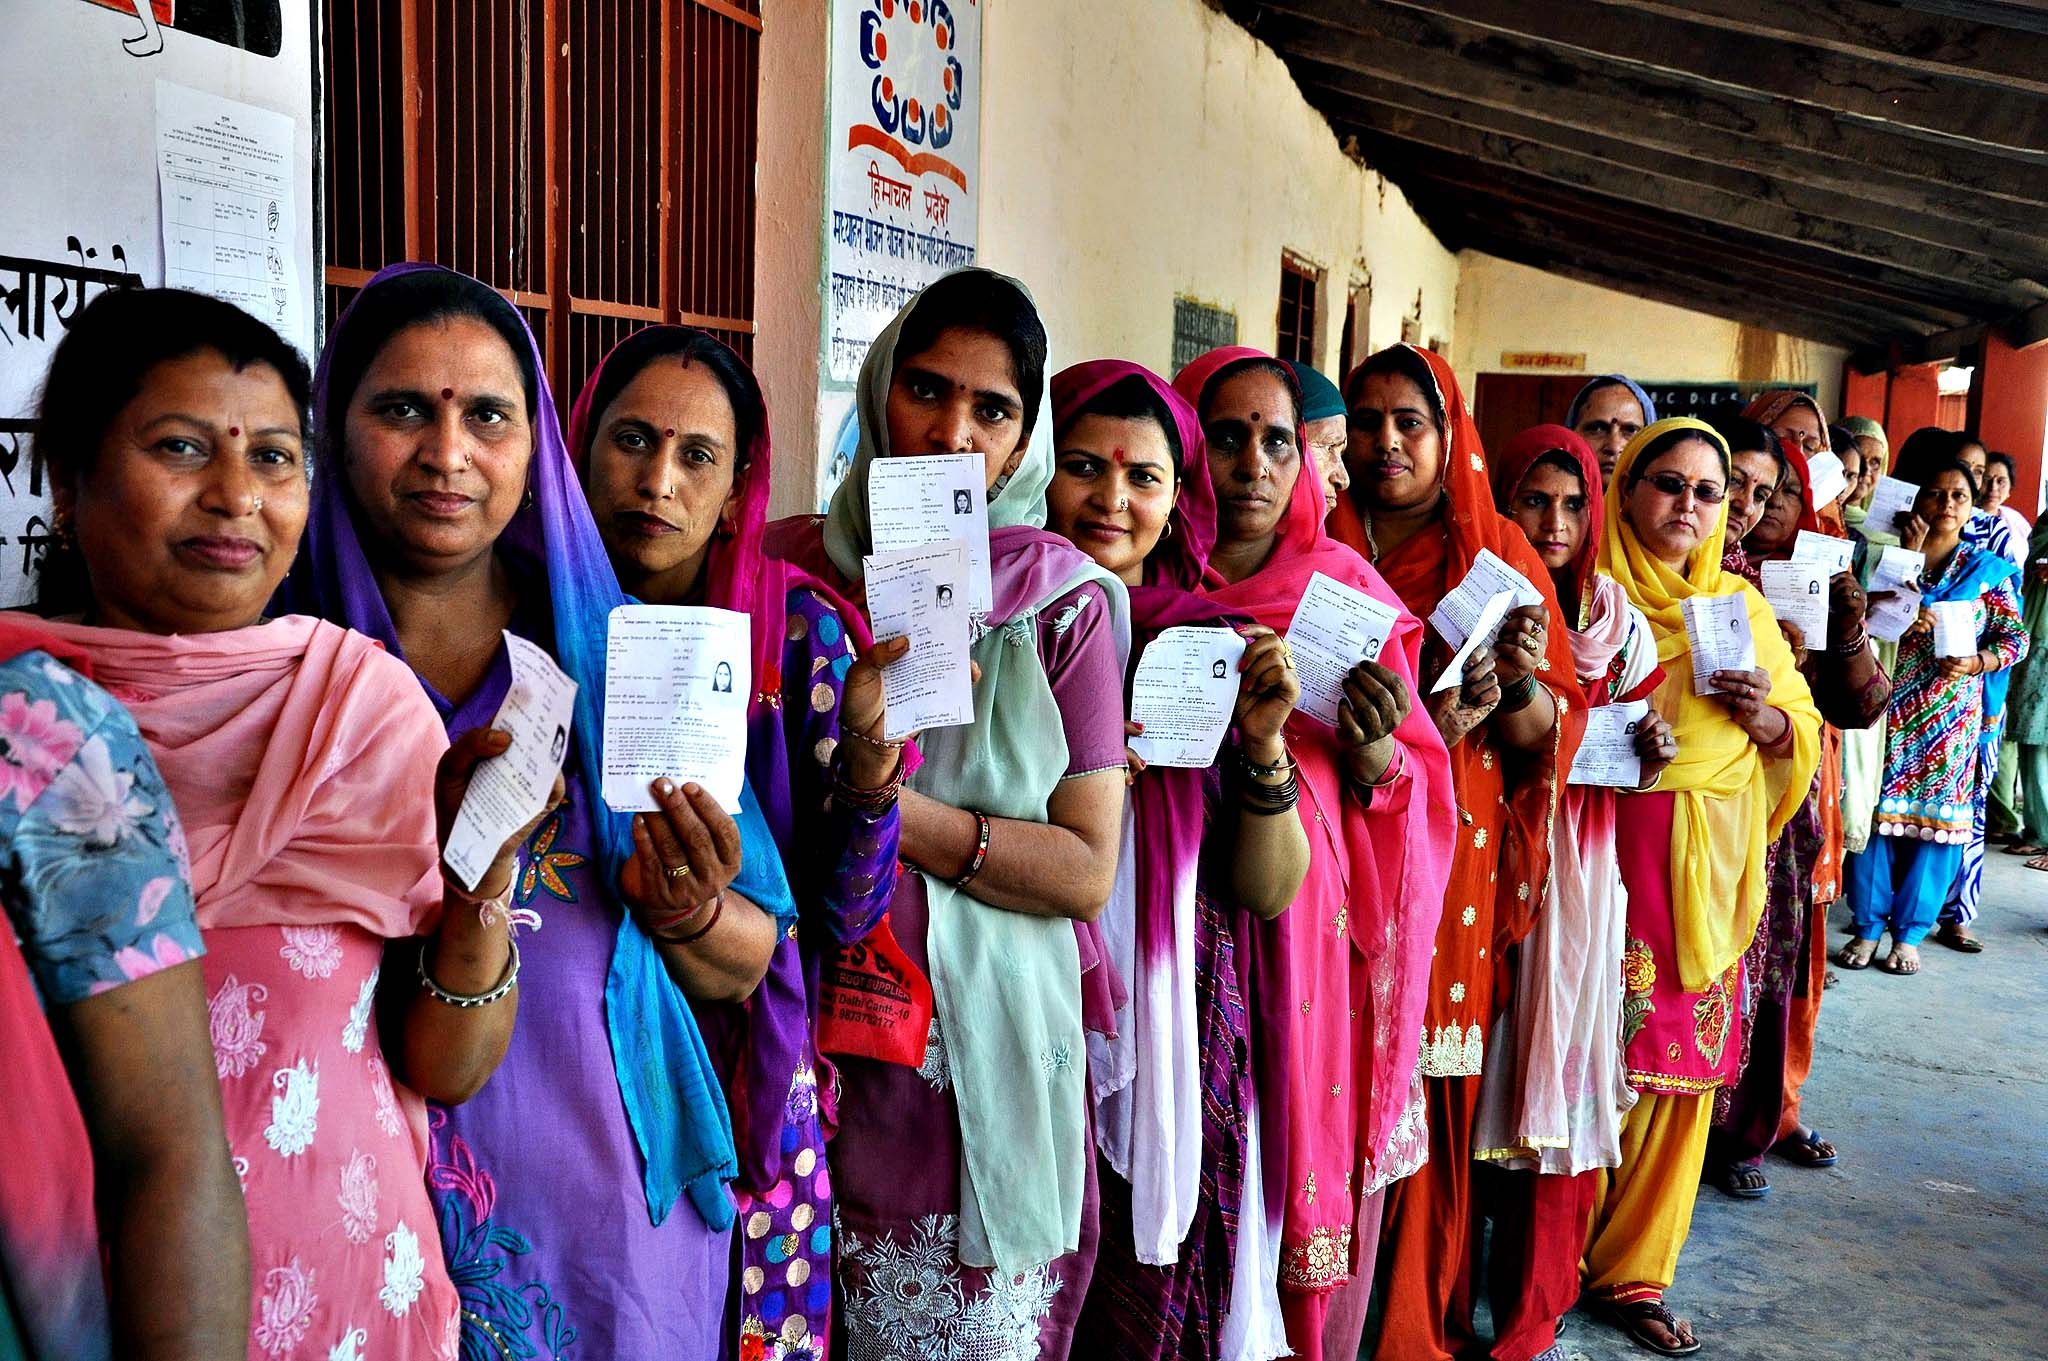 Indian women show their voting slips as they wait to cast their votes at a polling station during the 8th phase of Parliamentary election at Palampur, Himachal Pradesh, India, 07 May 2014. Parliamentary elections in India are being held in nine phases between 07 April and 12 May 2014. A total of 814.6 million people are eligible to vote, around 100 million more than in the elections in 2009.